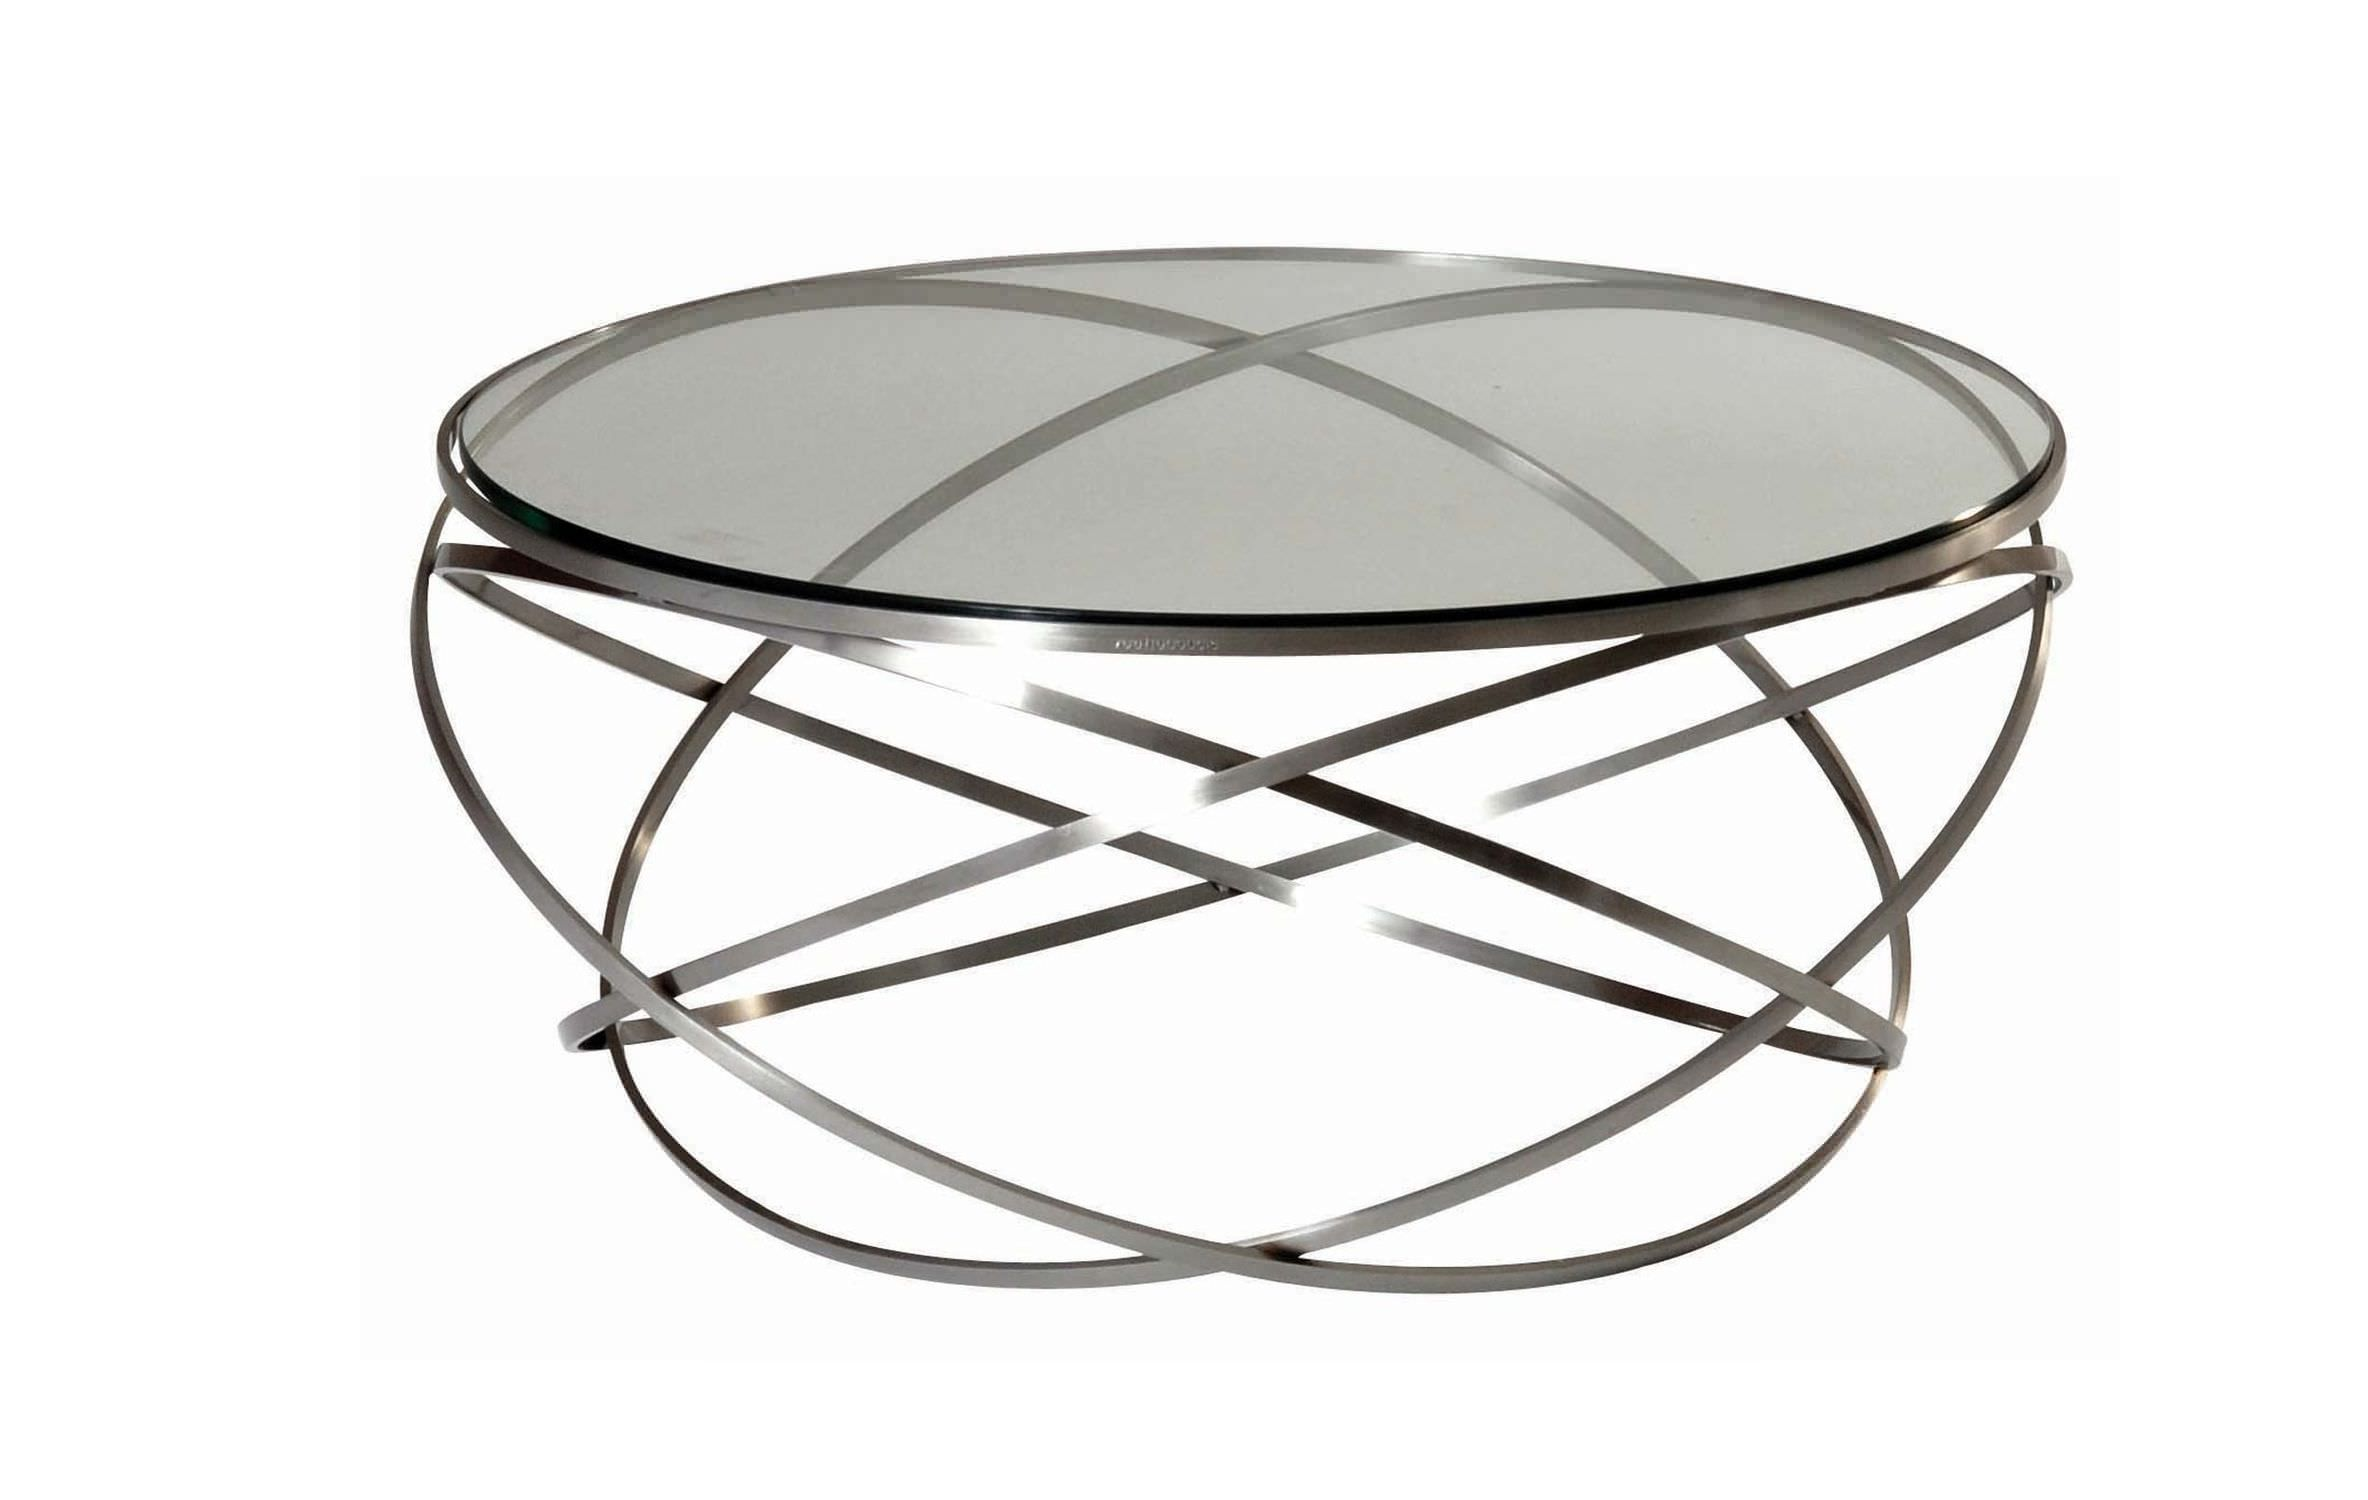 Precious coffe table by Roche Bobois Déco